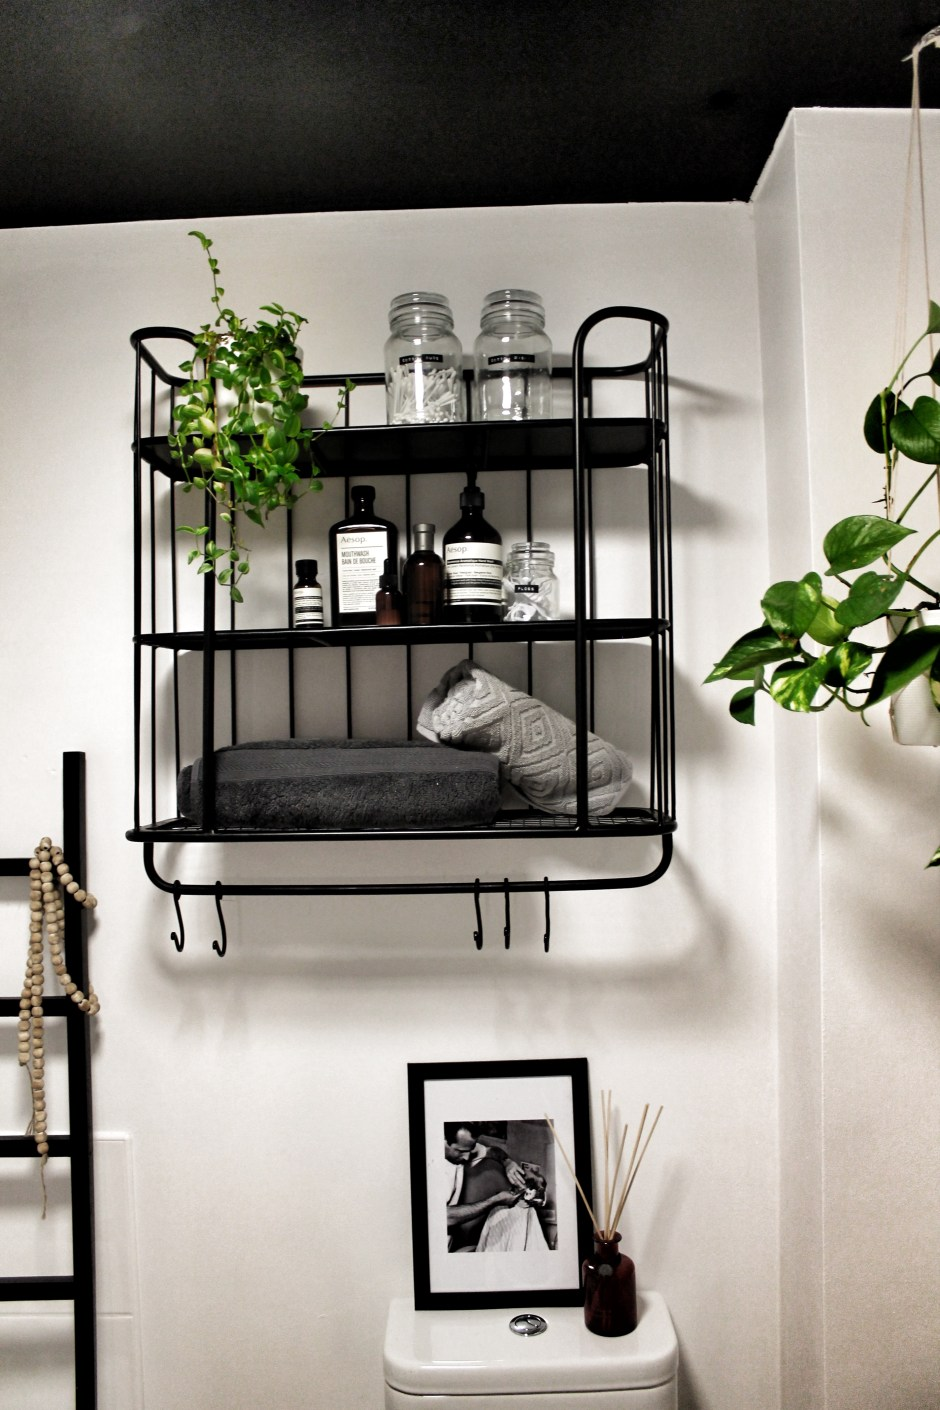 10 Shelving Designs To Get Your Shelfie Fix